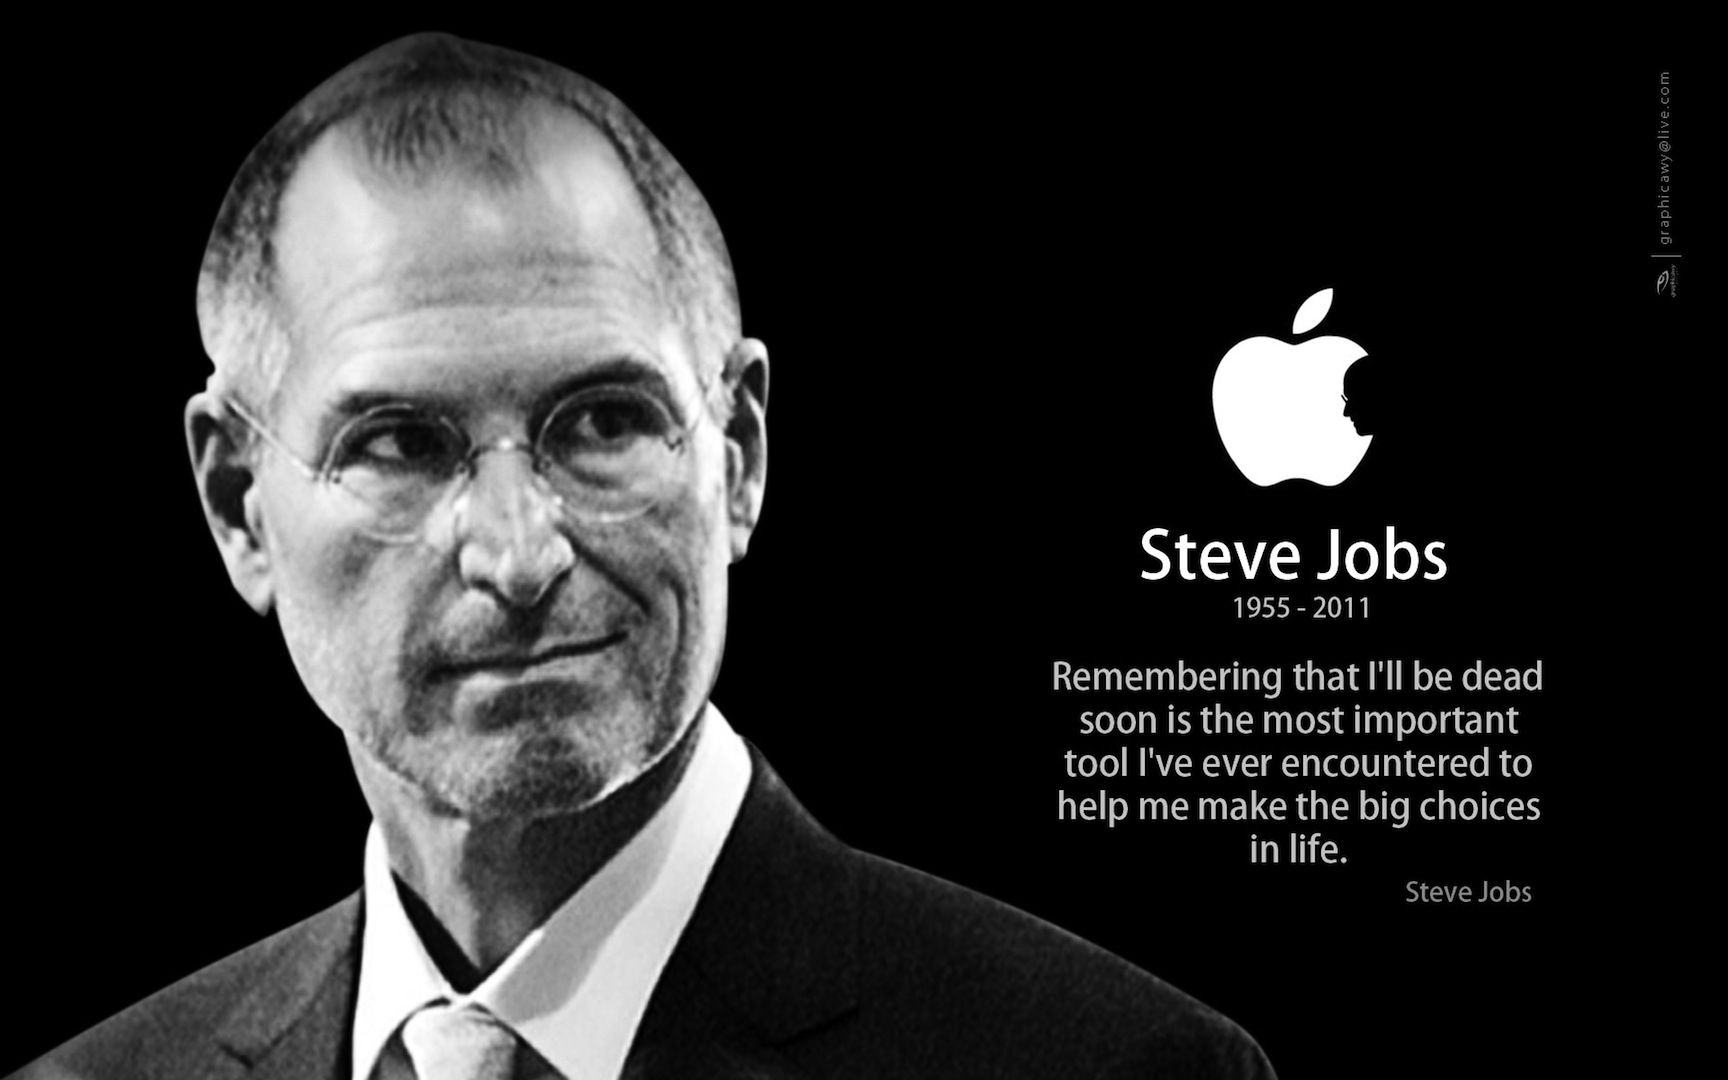 Steve Jobs Quotes Fascinating Steve Jobs Quotes Hd Wallpaper  Quotes  Pinterest  Steve Jobs